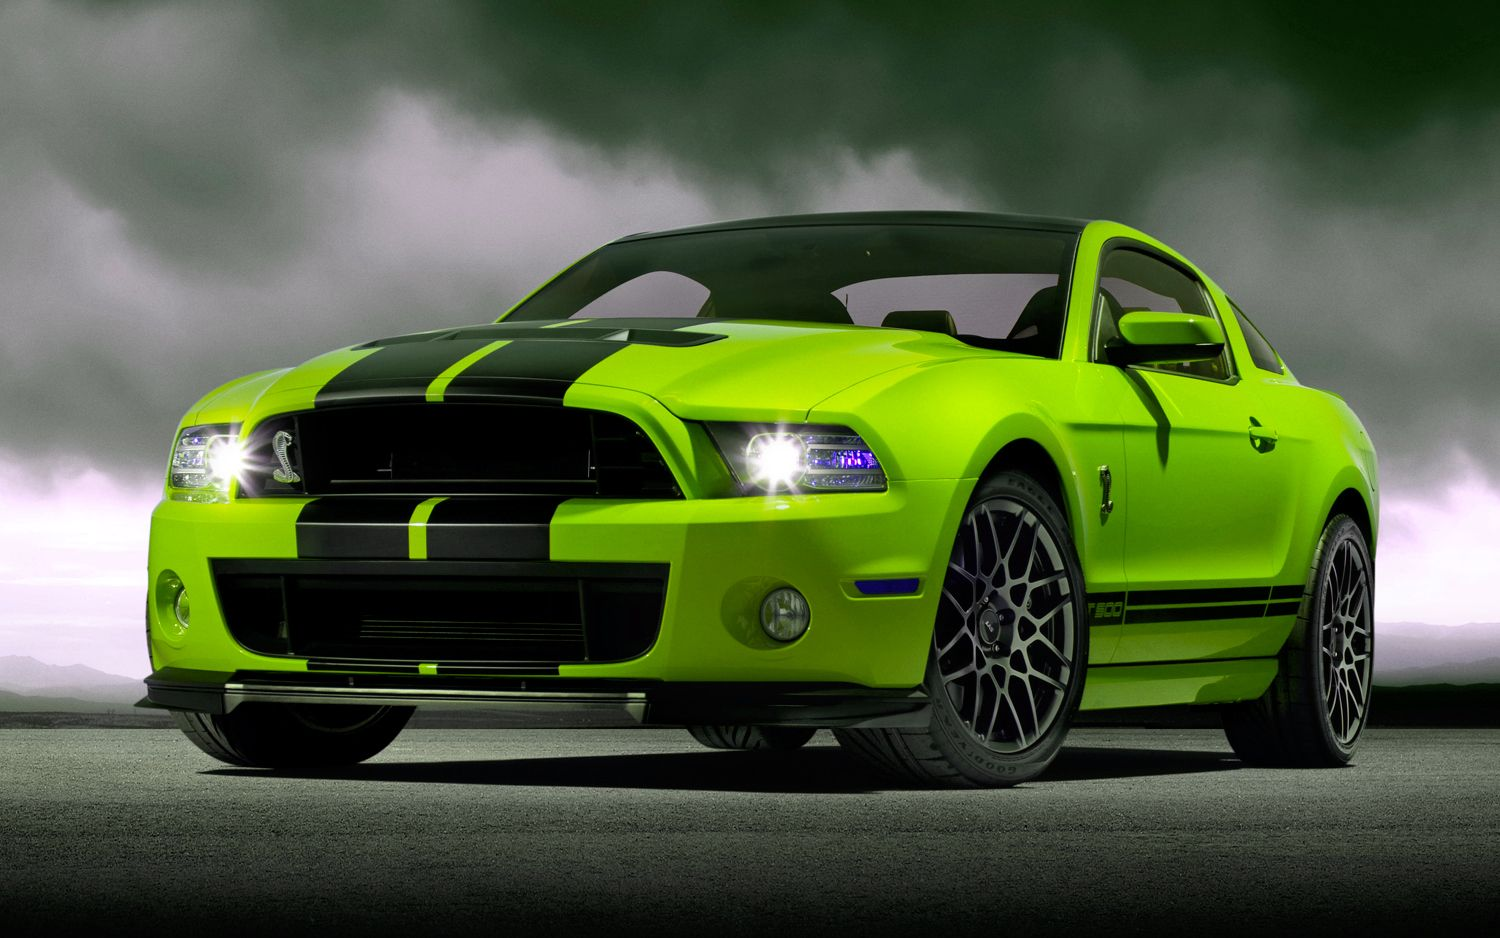 Green Mustang Car This Is Mine To Anyone Want To Buy It For Me Ford Mustang Shelby Gt New Mustang Green Mustang